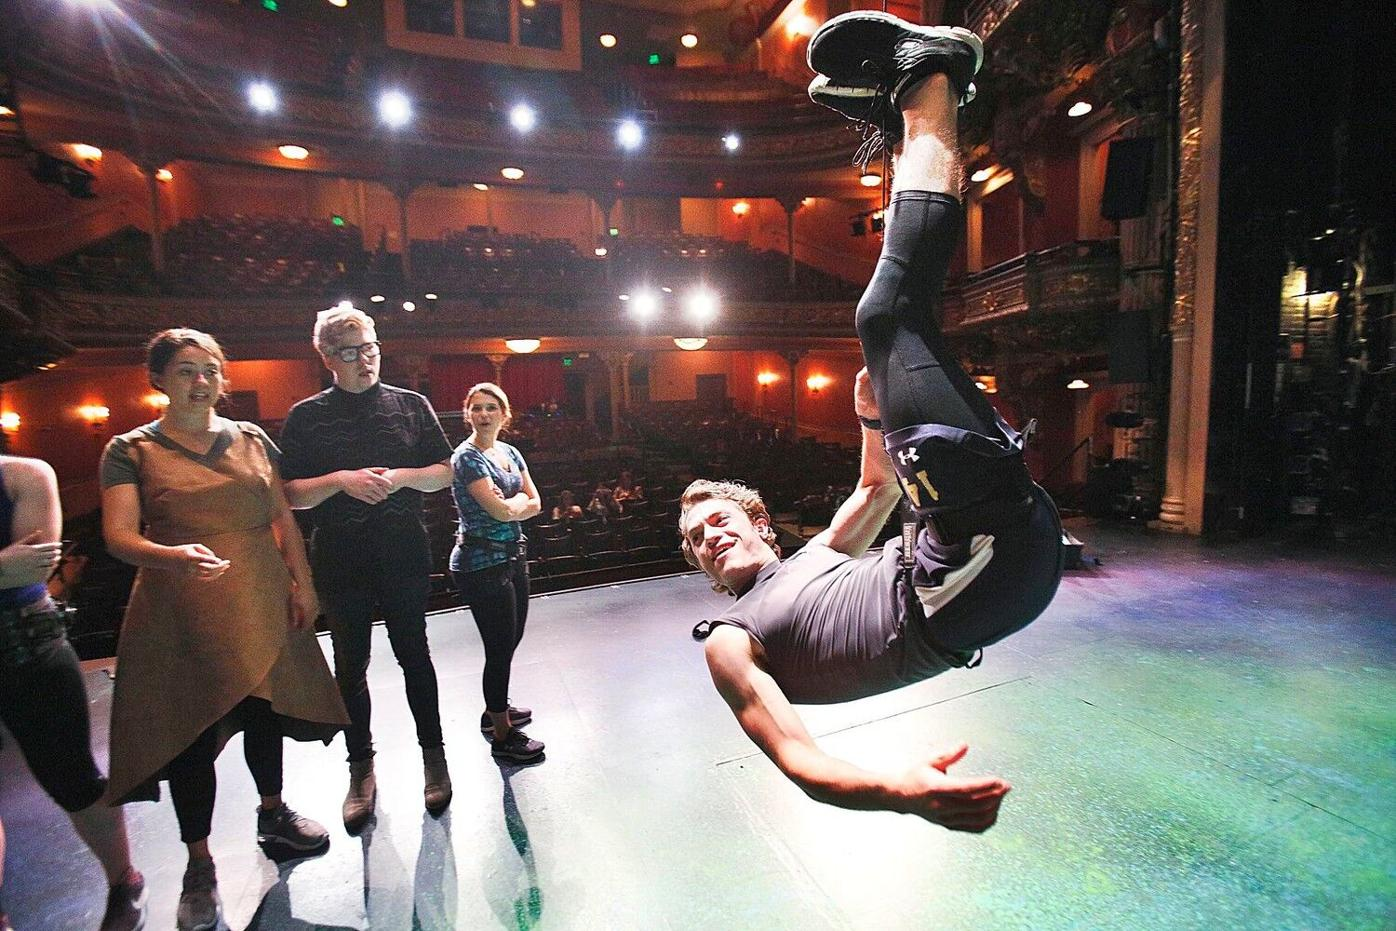 Stage flight: Berkshire Theatre Group's 'Tarzan' brings high-flying community theater to The Colonial